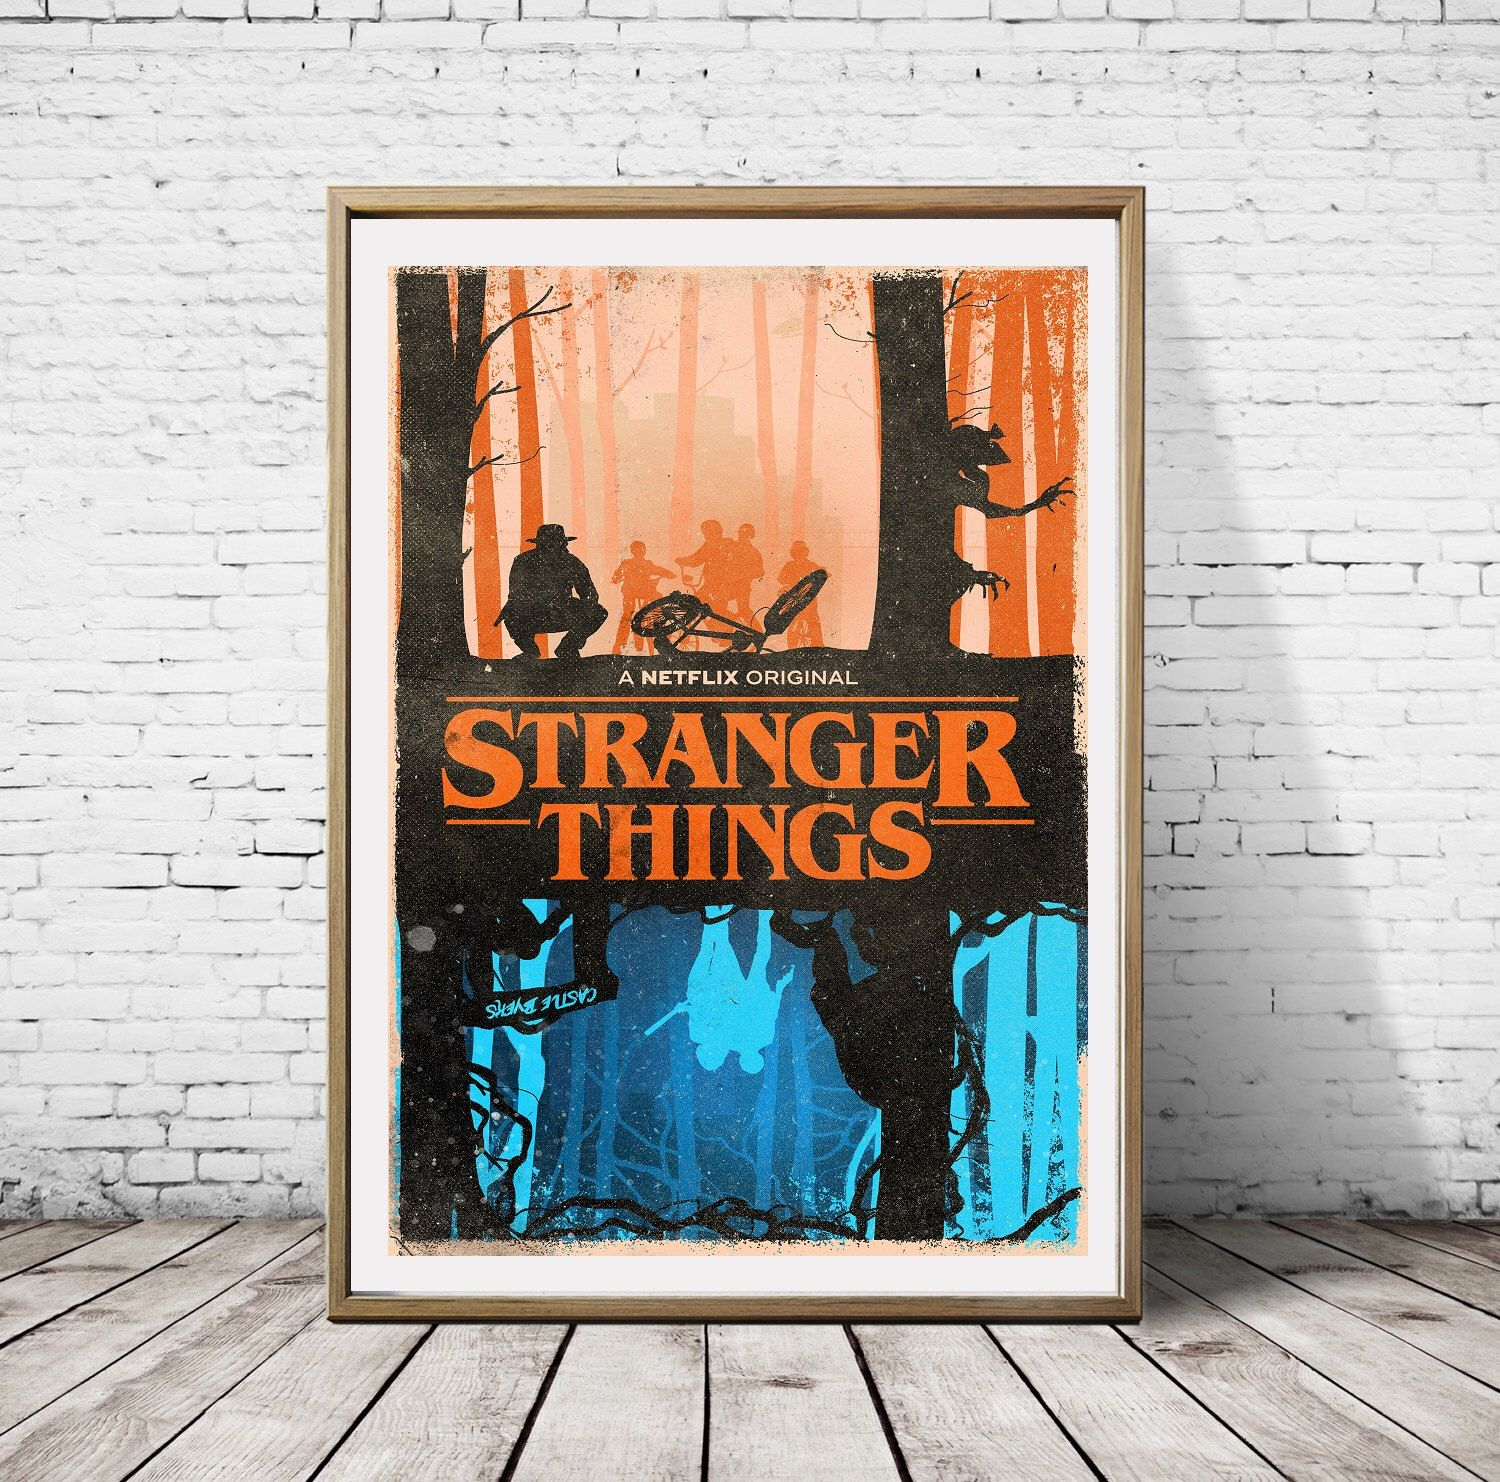 Stranger Things Upside Down Things The Two Worlds Alternative Artwork Minimalist Tv Series Print Poster by Perdashka on Etsy https://www.etsy.com/listing/488386501/stranger-things-upside-down-things-the